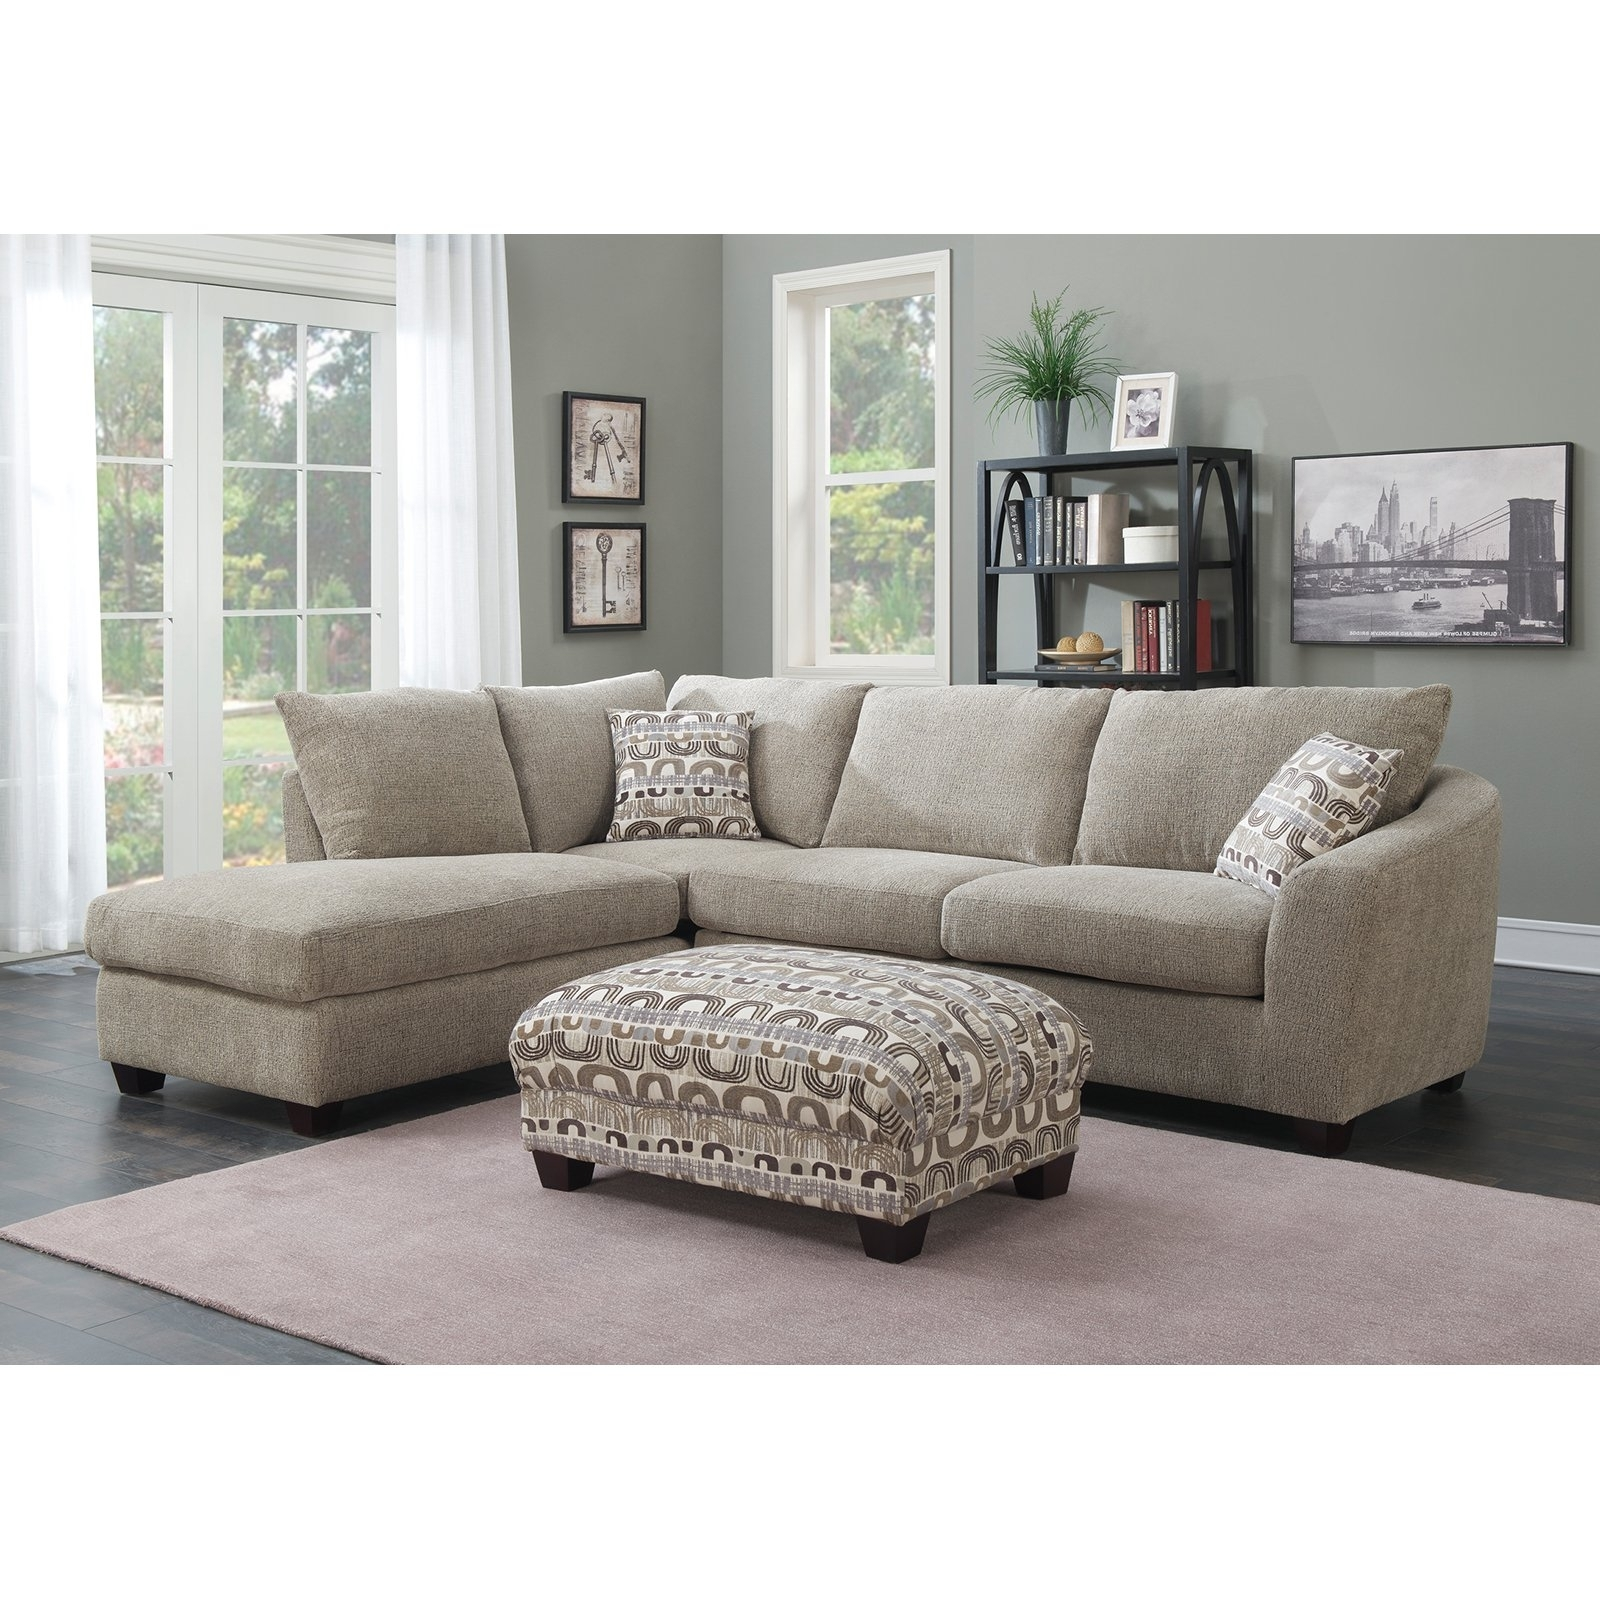 Emerald Home Urbana 2 Piece Sectional Sofa With Chaise - Walmart within Most Popular 2 Piece Sectional Sofas With Chaise